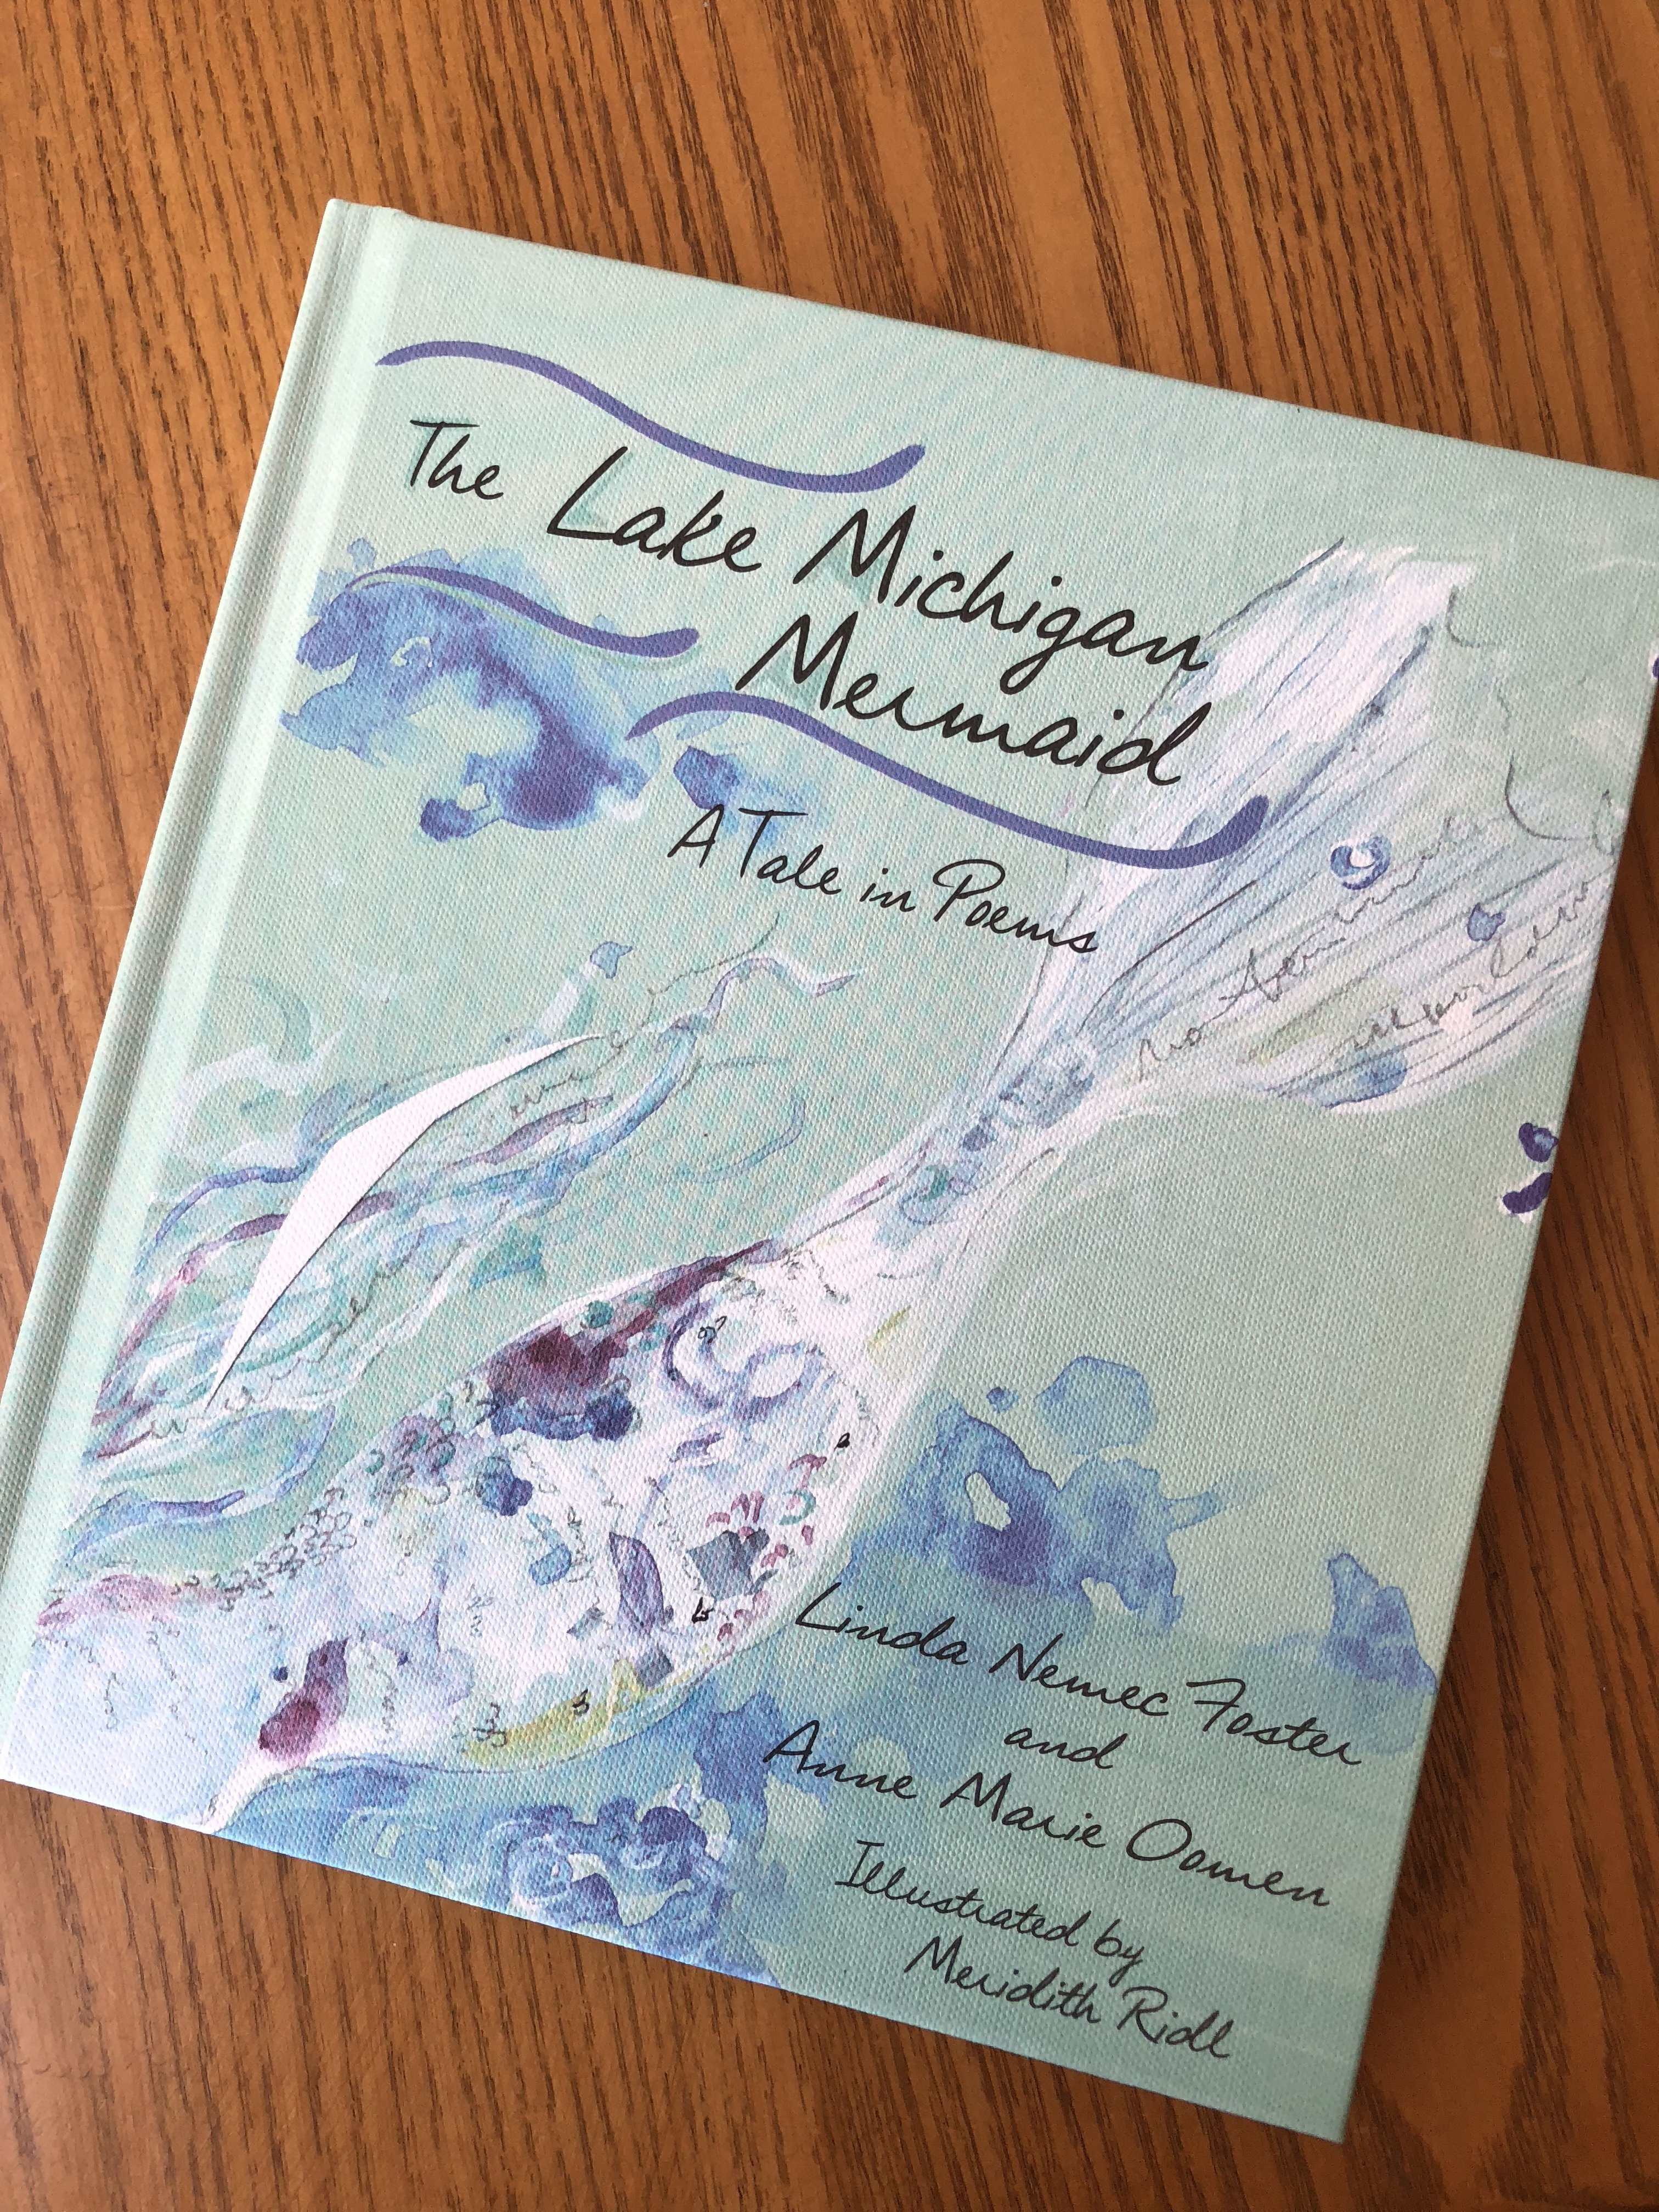 The Lake Michigan Mermaid: A Tale in Poems 00008